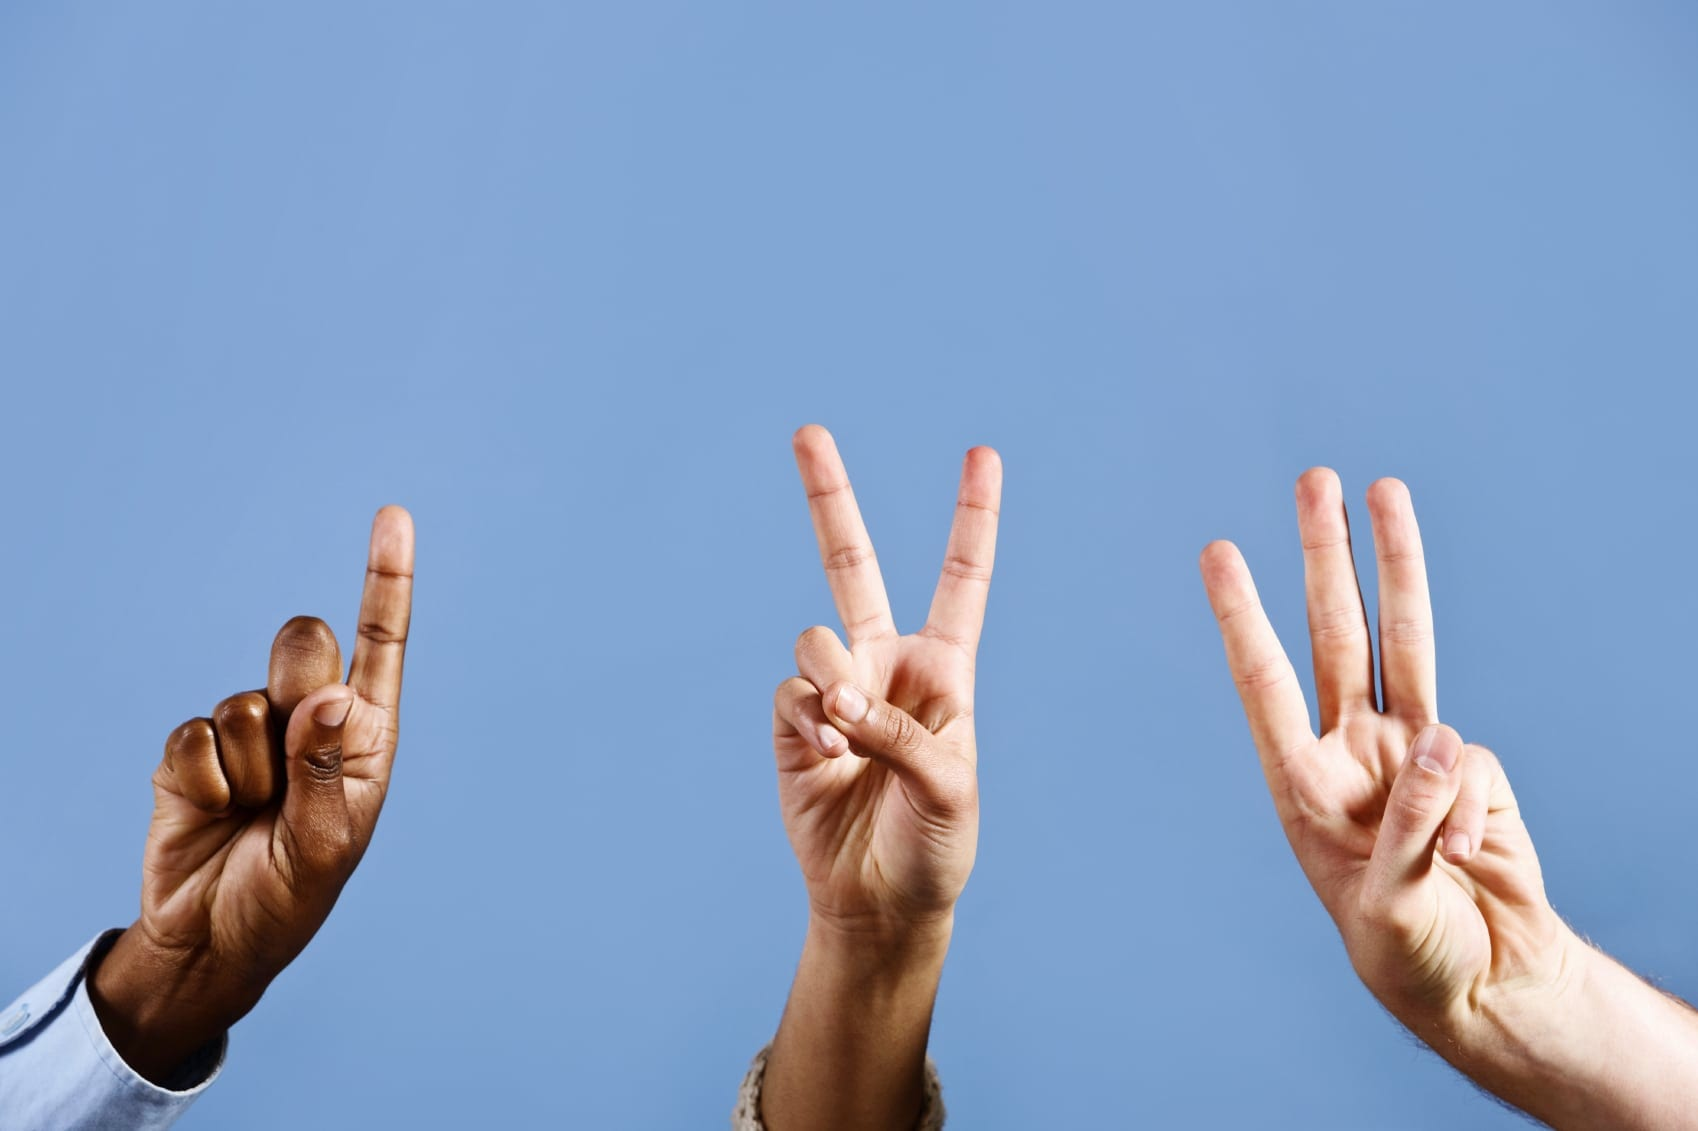 Three Hands Holding Up Fingers Stock Photo